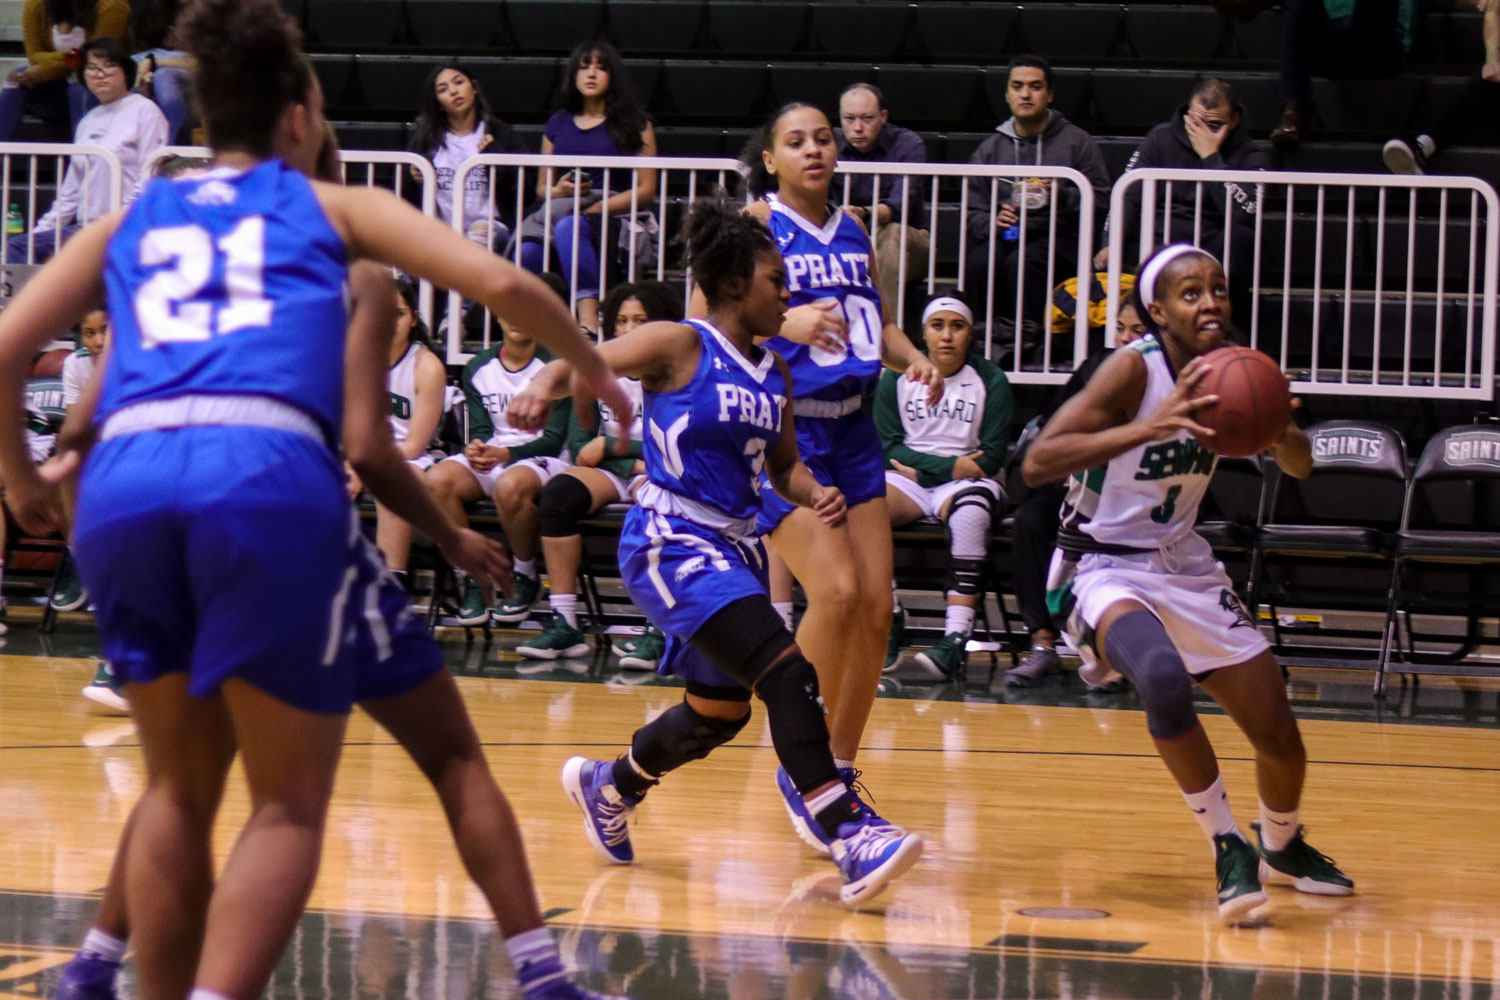 Freshman gaurd Aquila Mucubaquire goes up to make a shot against the Pratt Lady Beavers on Feb. 9 in the greenhouse.